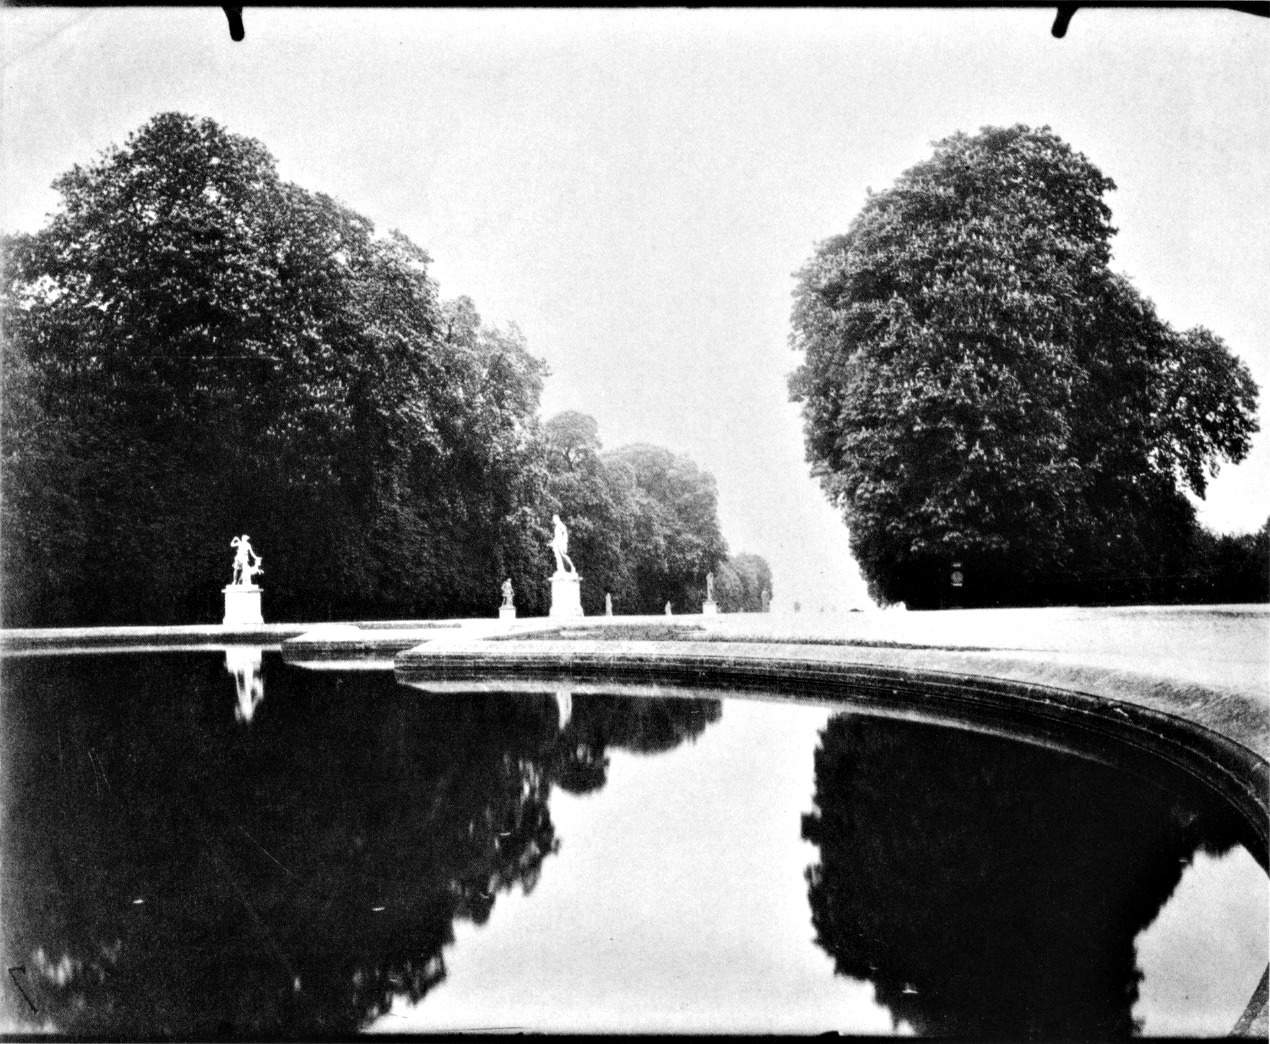 Atget, Reflecting Pool, Saint-Cloud, 1915-19.